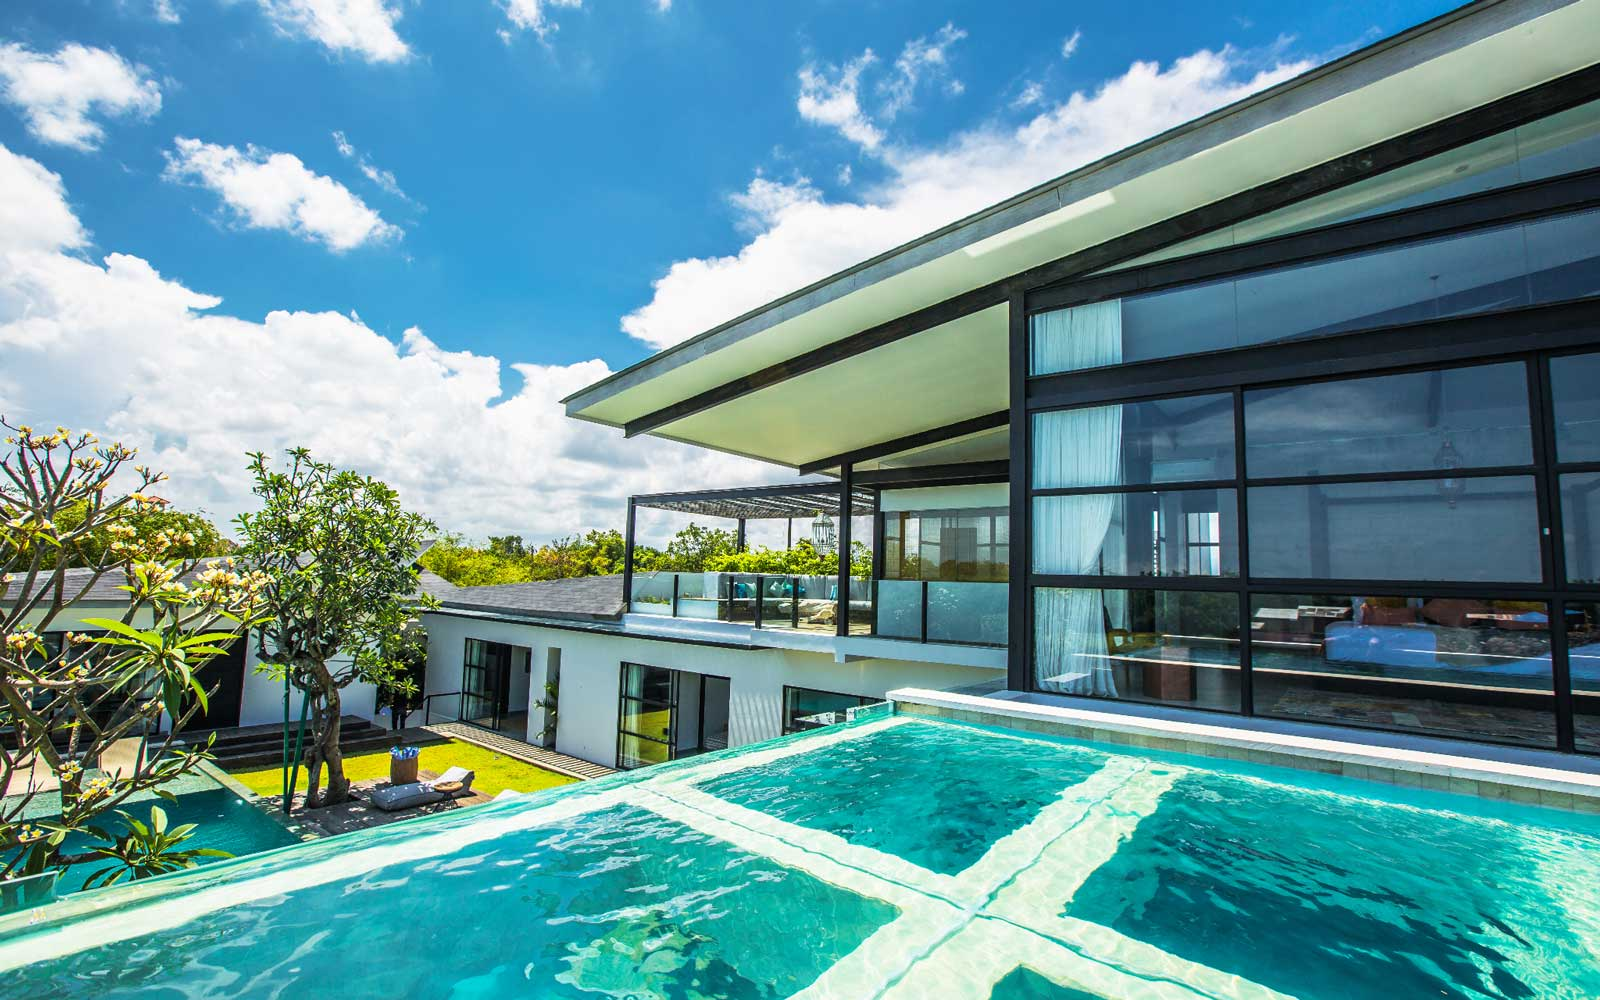 Stay in a Luxury Vlla in Bali